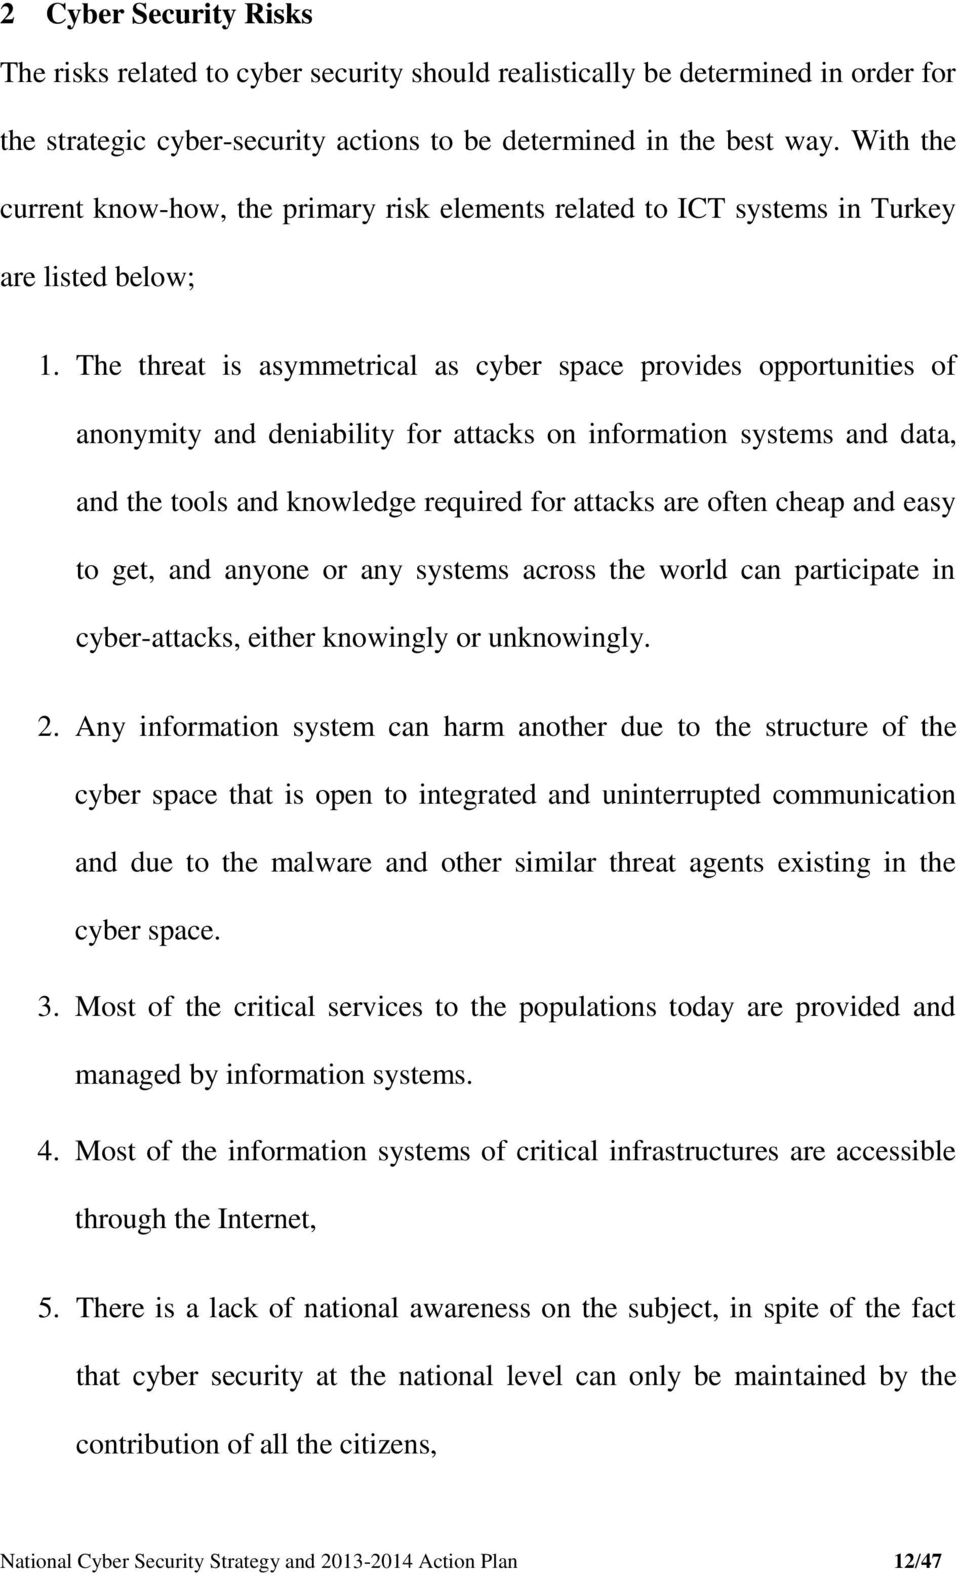 The threat is asymmetrical as cyber space provides opportunities of anonymity and deniability for attacks on information systems and data, and the tools and knowledge required for attacks are often